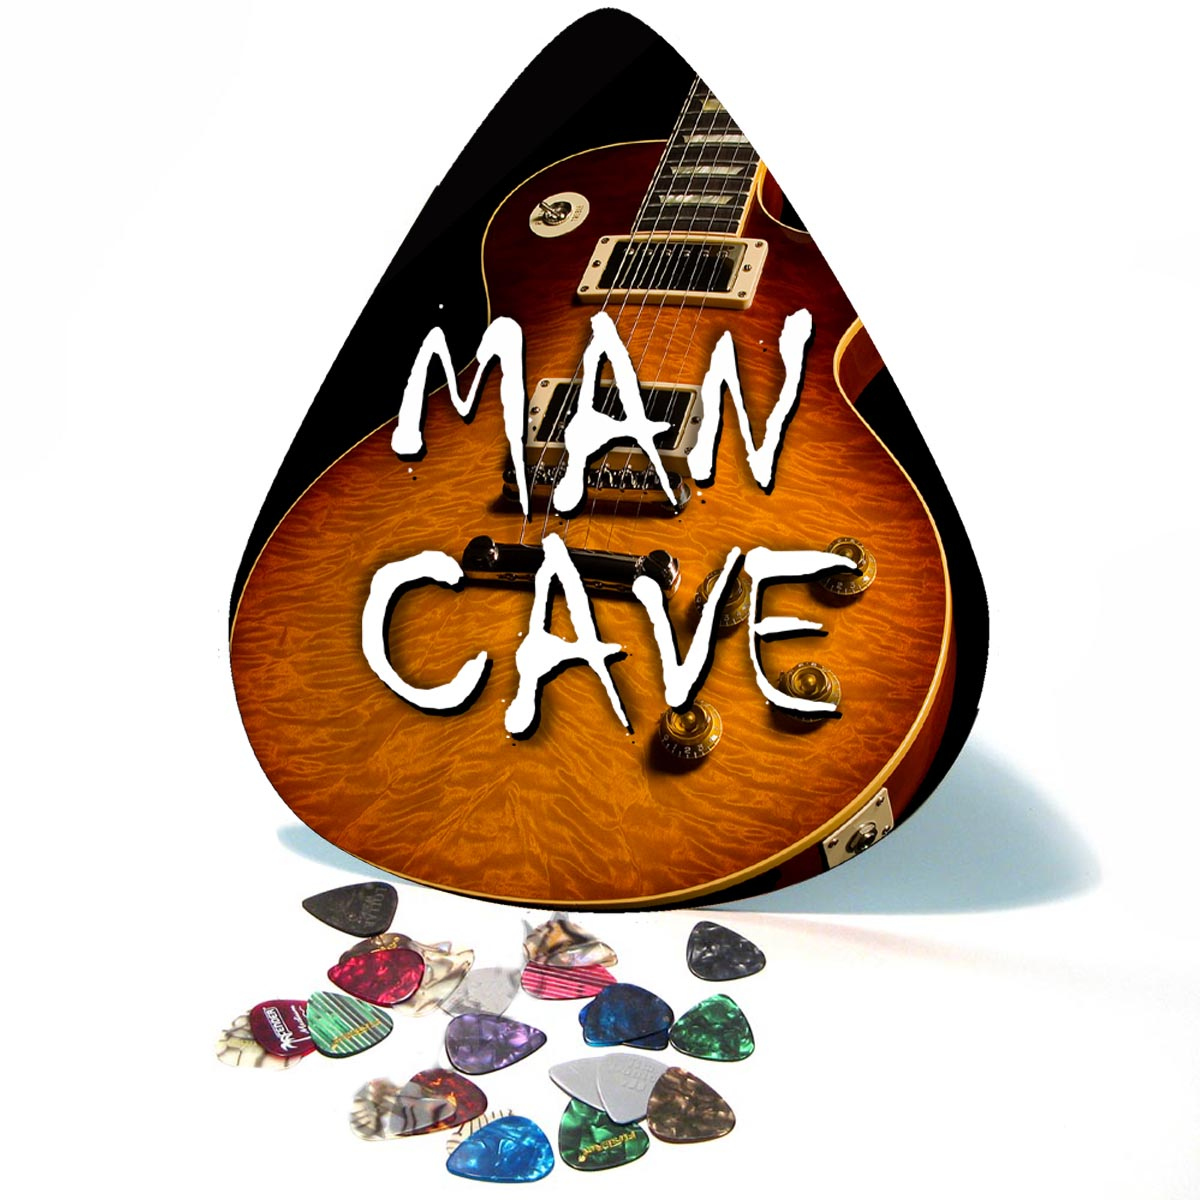 Vintage Les Paul Man Cave Giant Guitar Pick Wall Art  - 1099